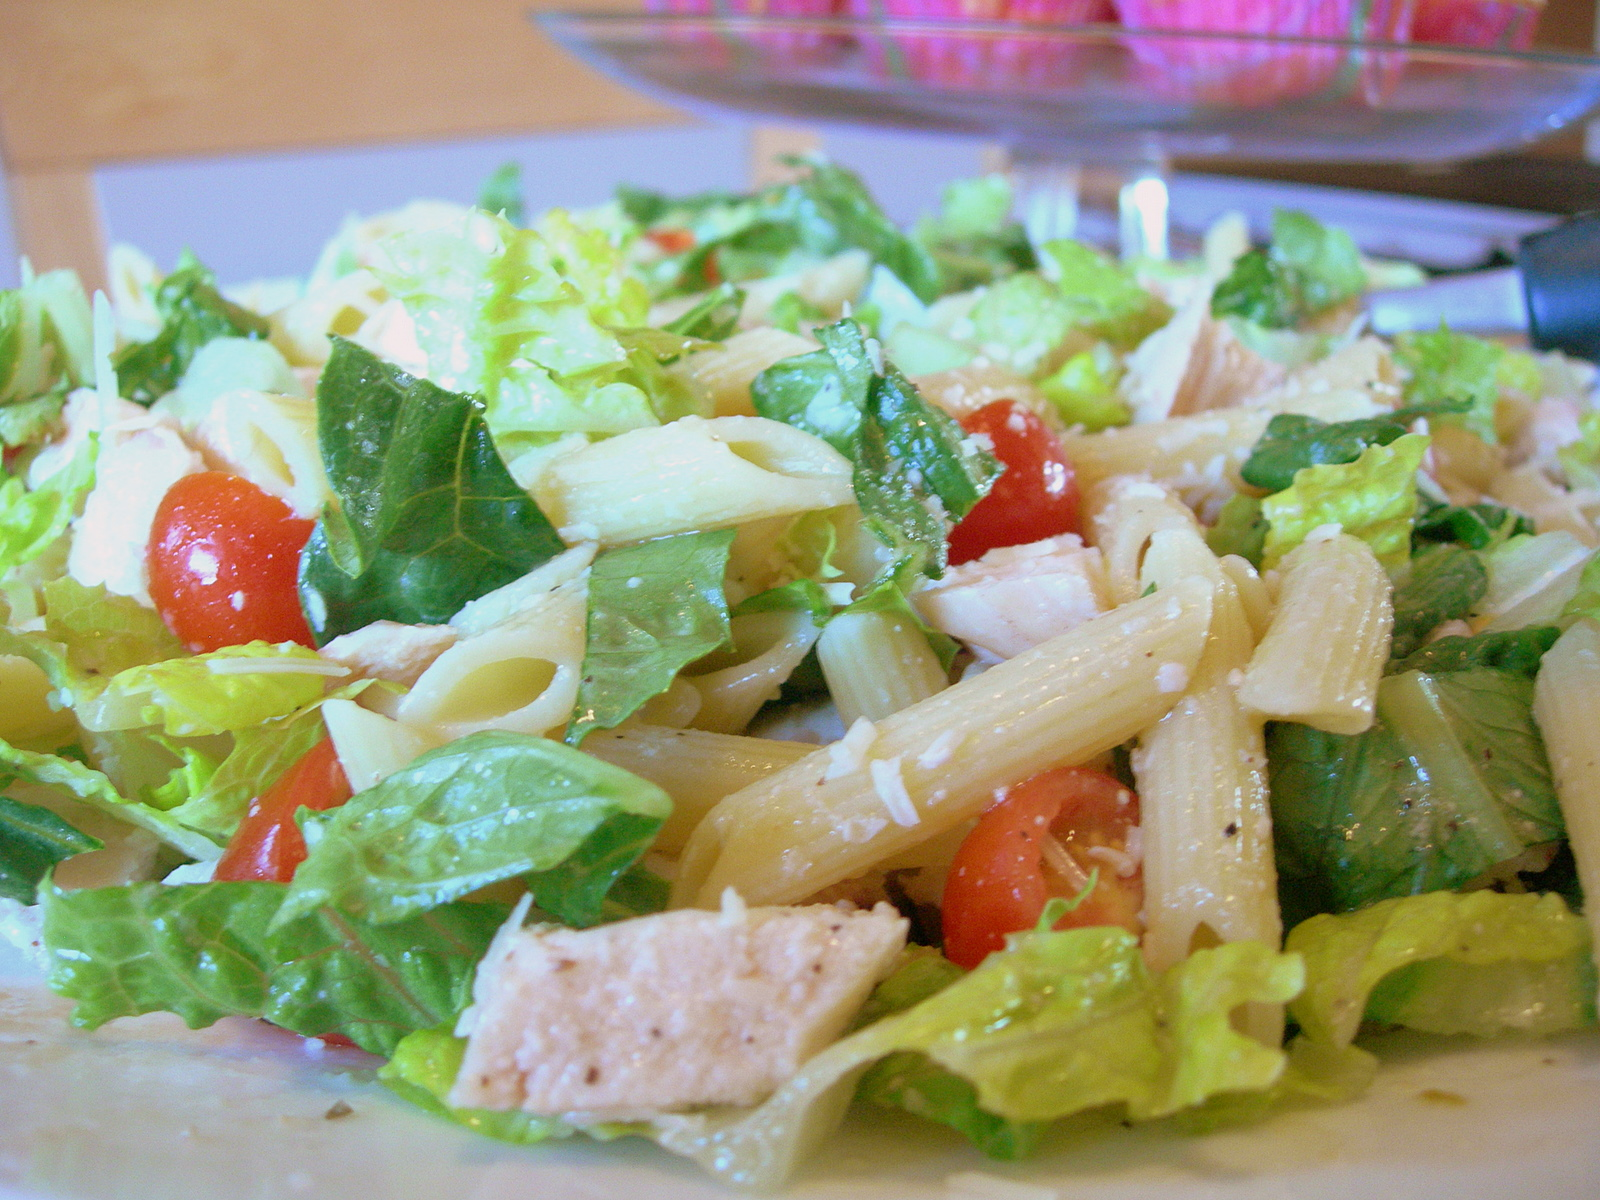 ... Recipes, Meal ideas, Menus, Food and Cooking Tips: Chicken Pasta Salad